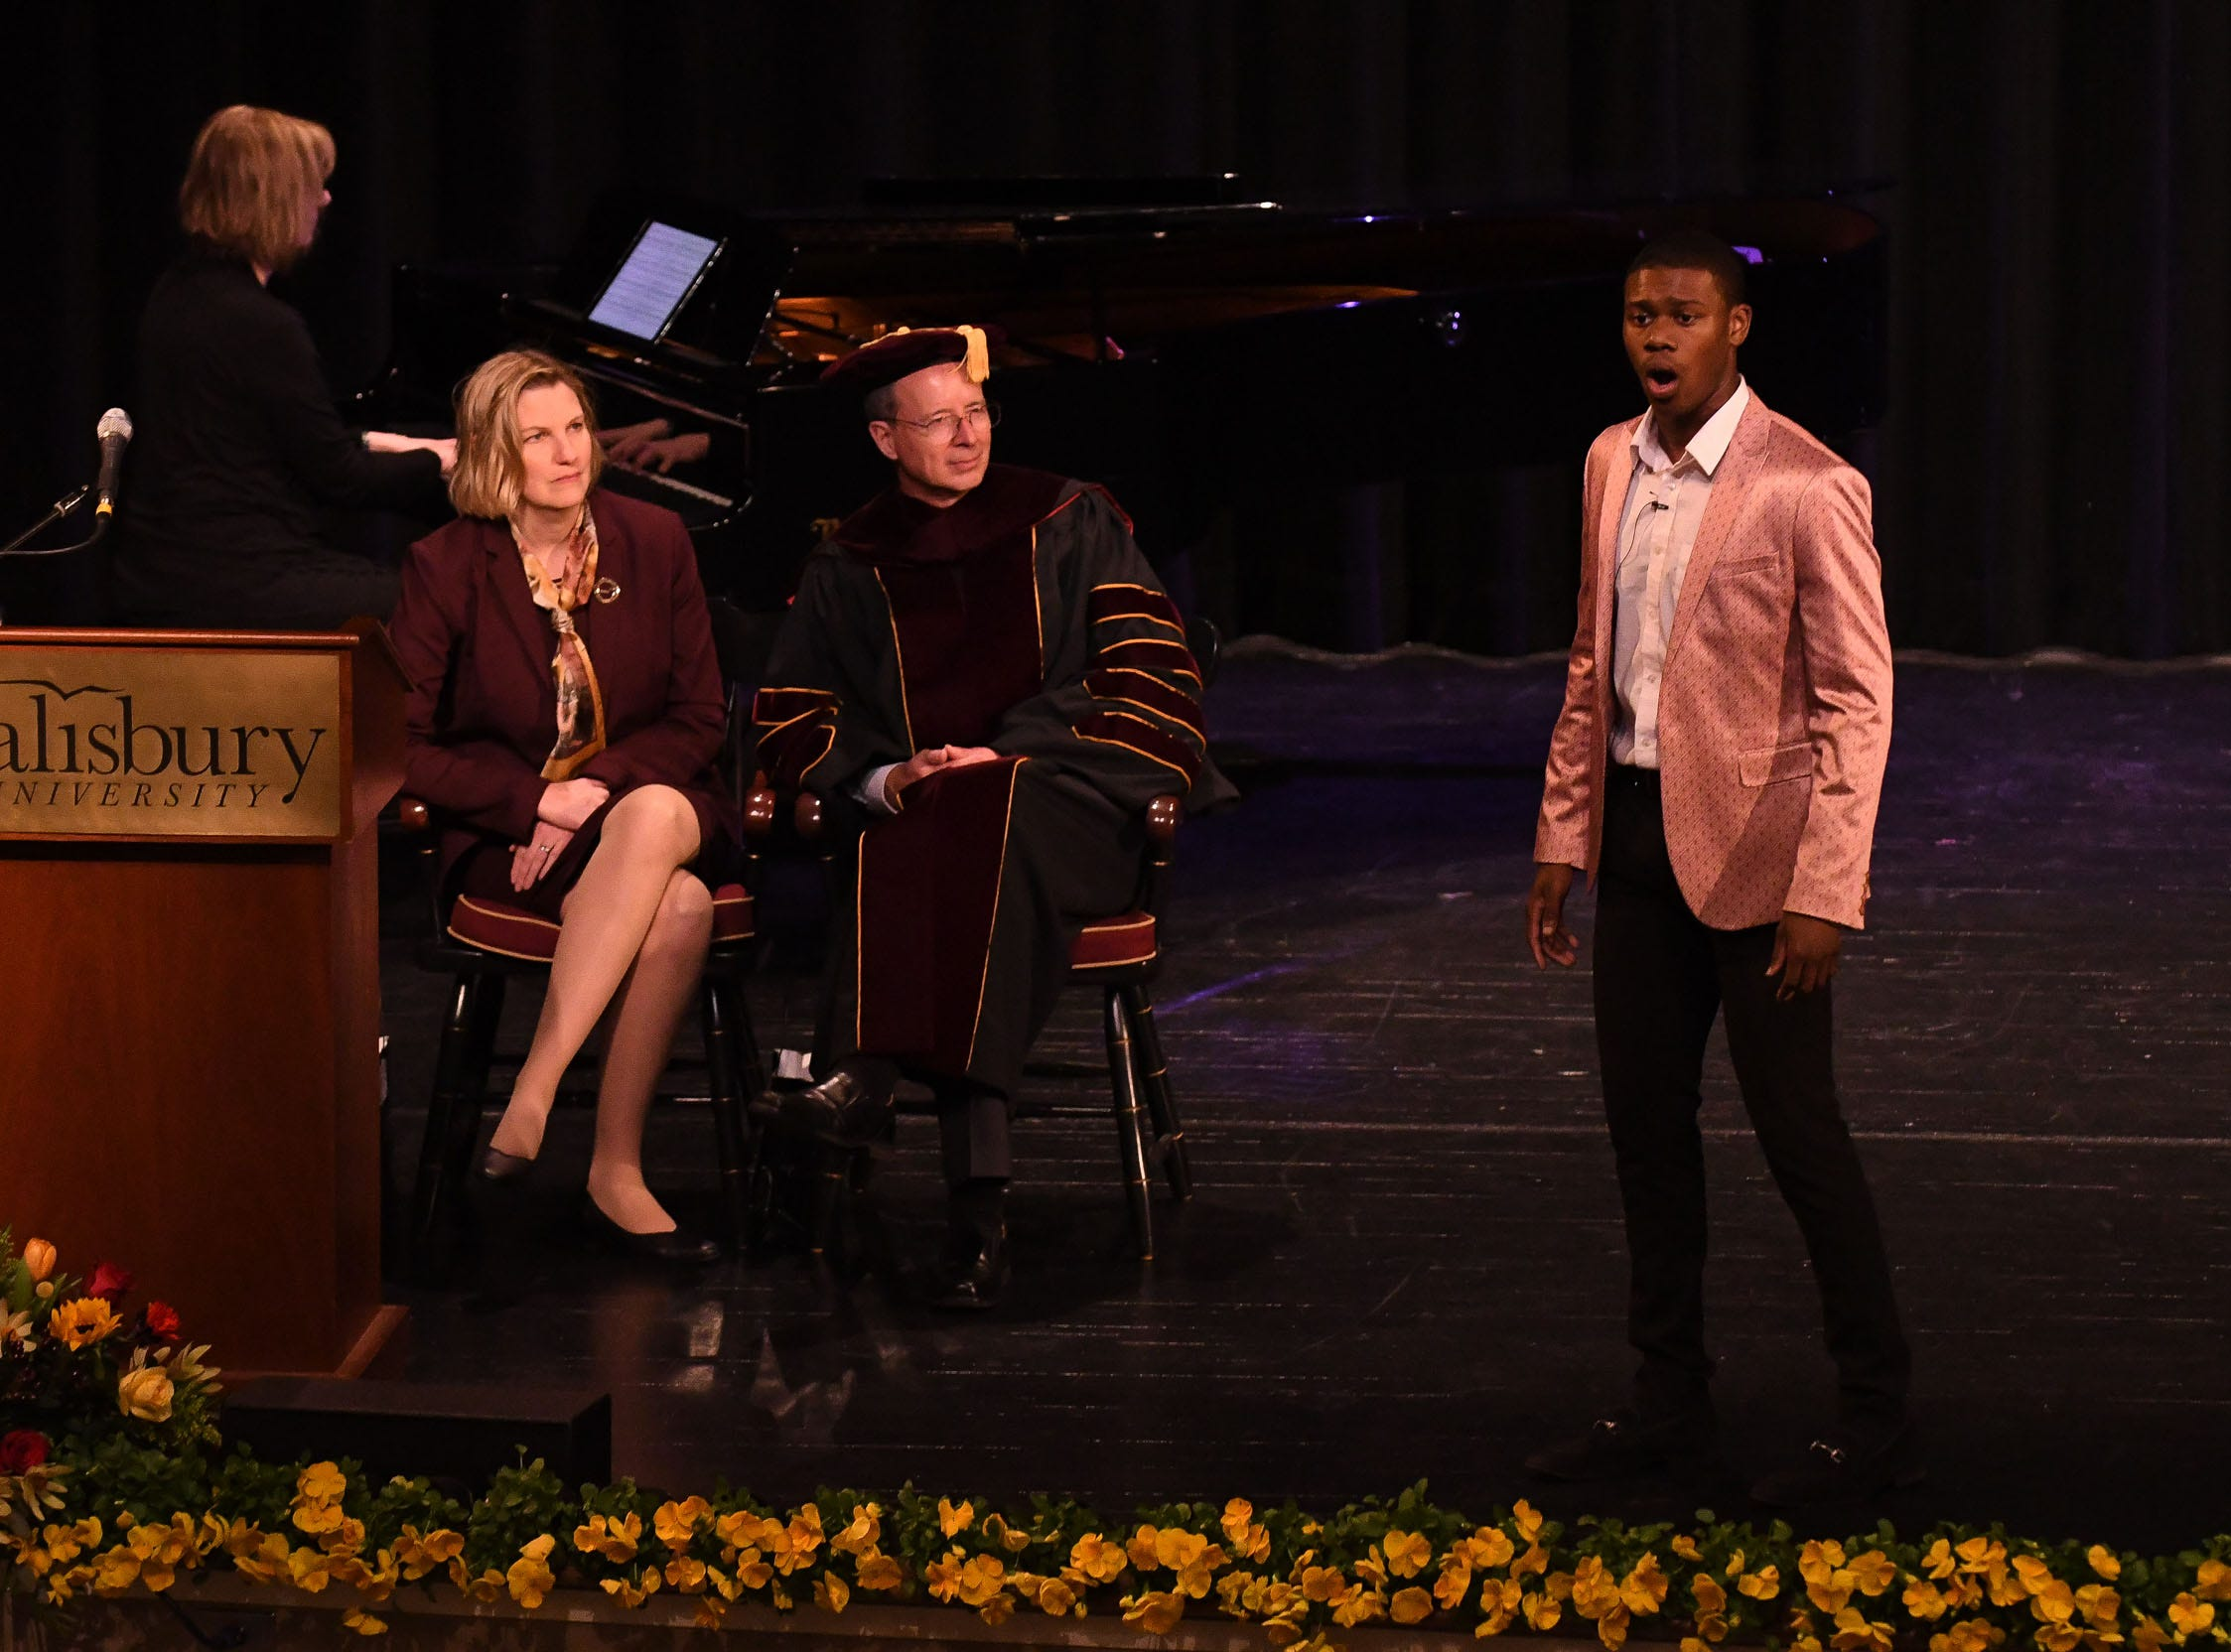 "Salisbury University student Jeremiah Copeland, performers ""Corner of the Sky"" from Pippin, during the inauguration of Dr. Charles A. Wight as Salisbury University's ninth president on Wednesday, April 10, 2019 during a ceremony held at Holloway Hall on the campus of Salisbury University."